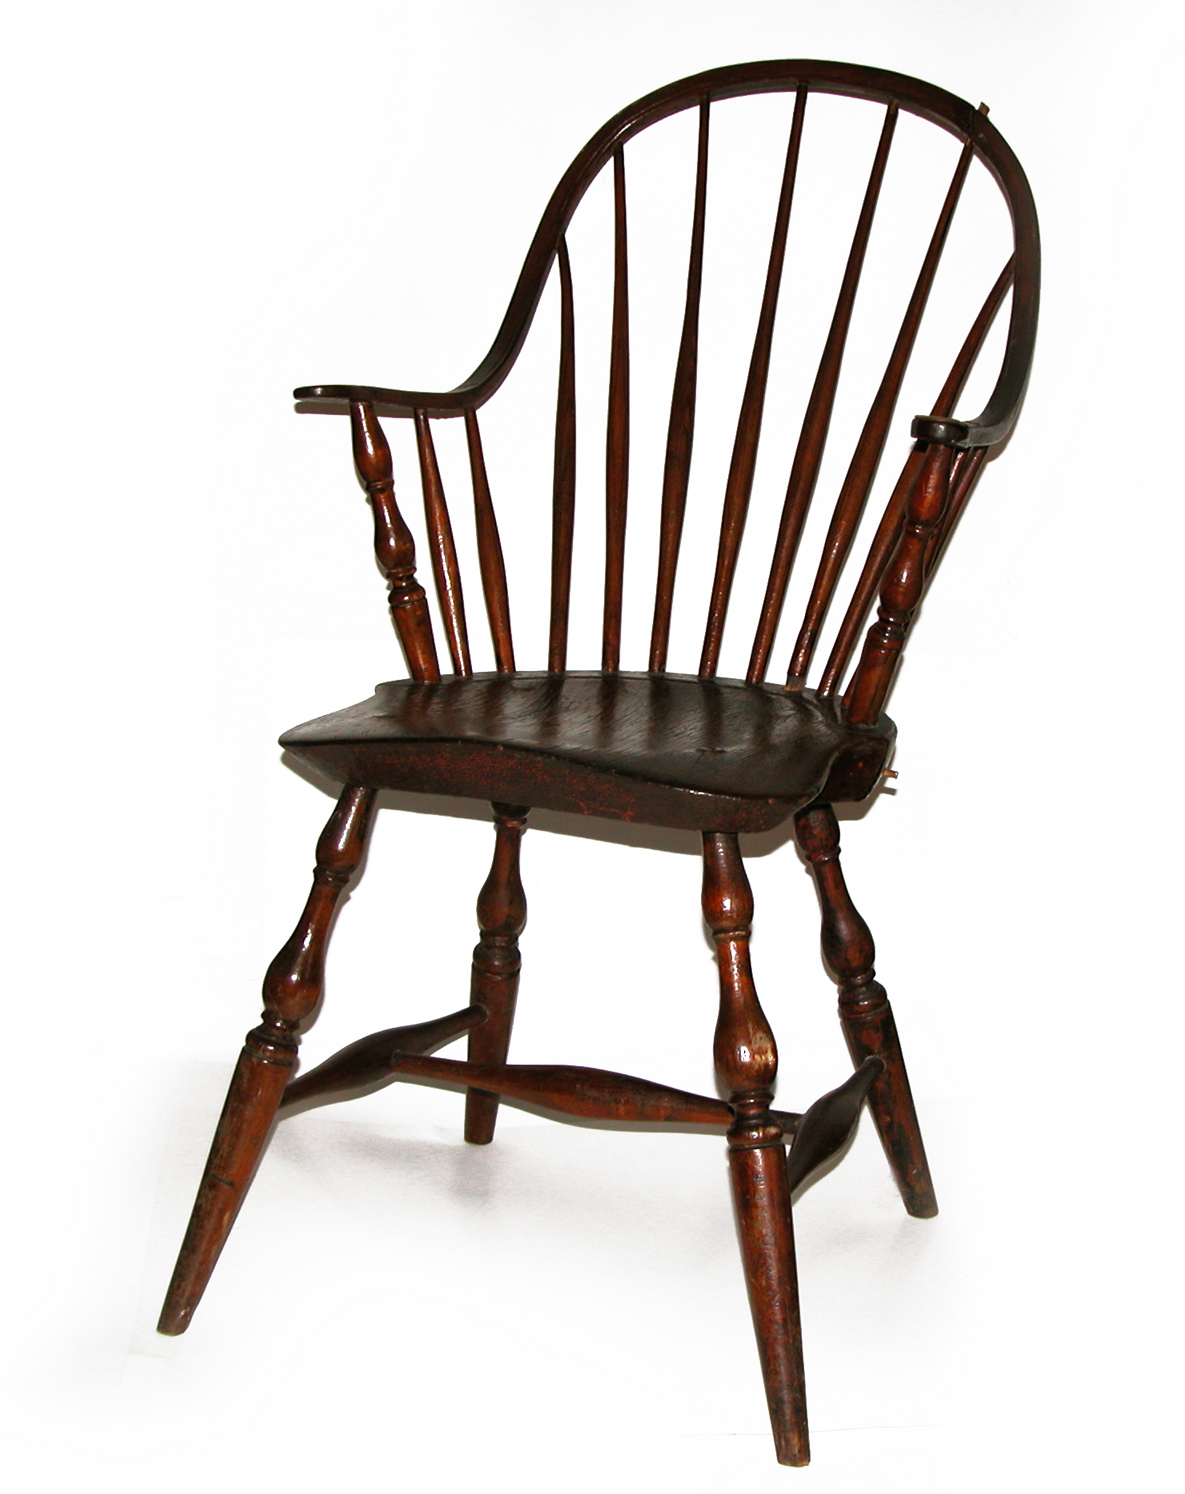 Contemporary Makers Antique Windsor Chair With Repairs